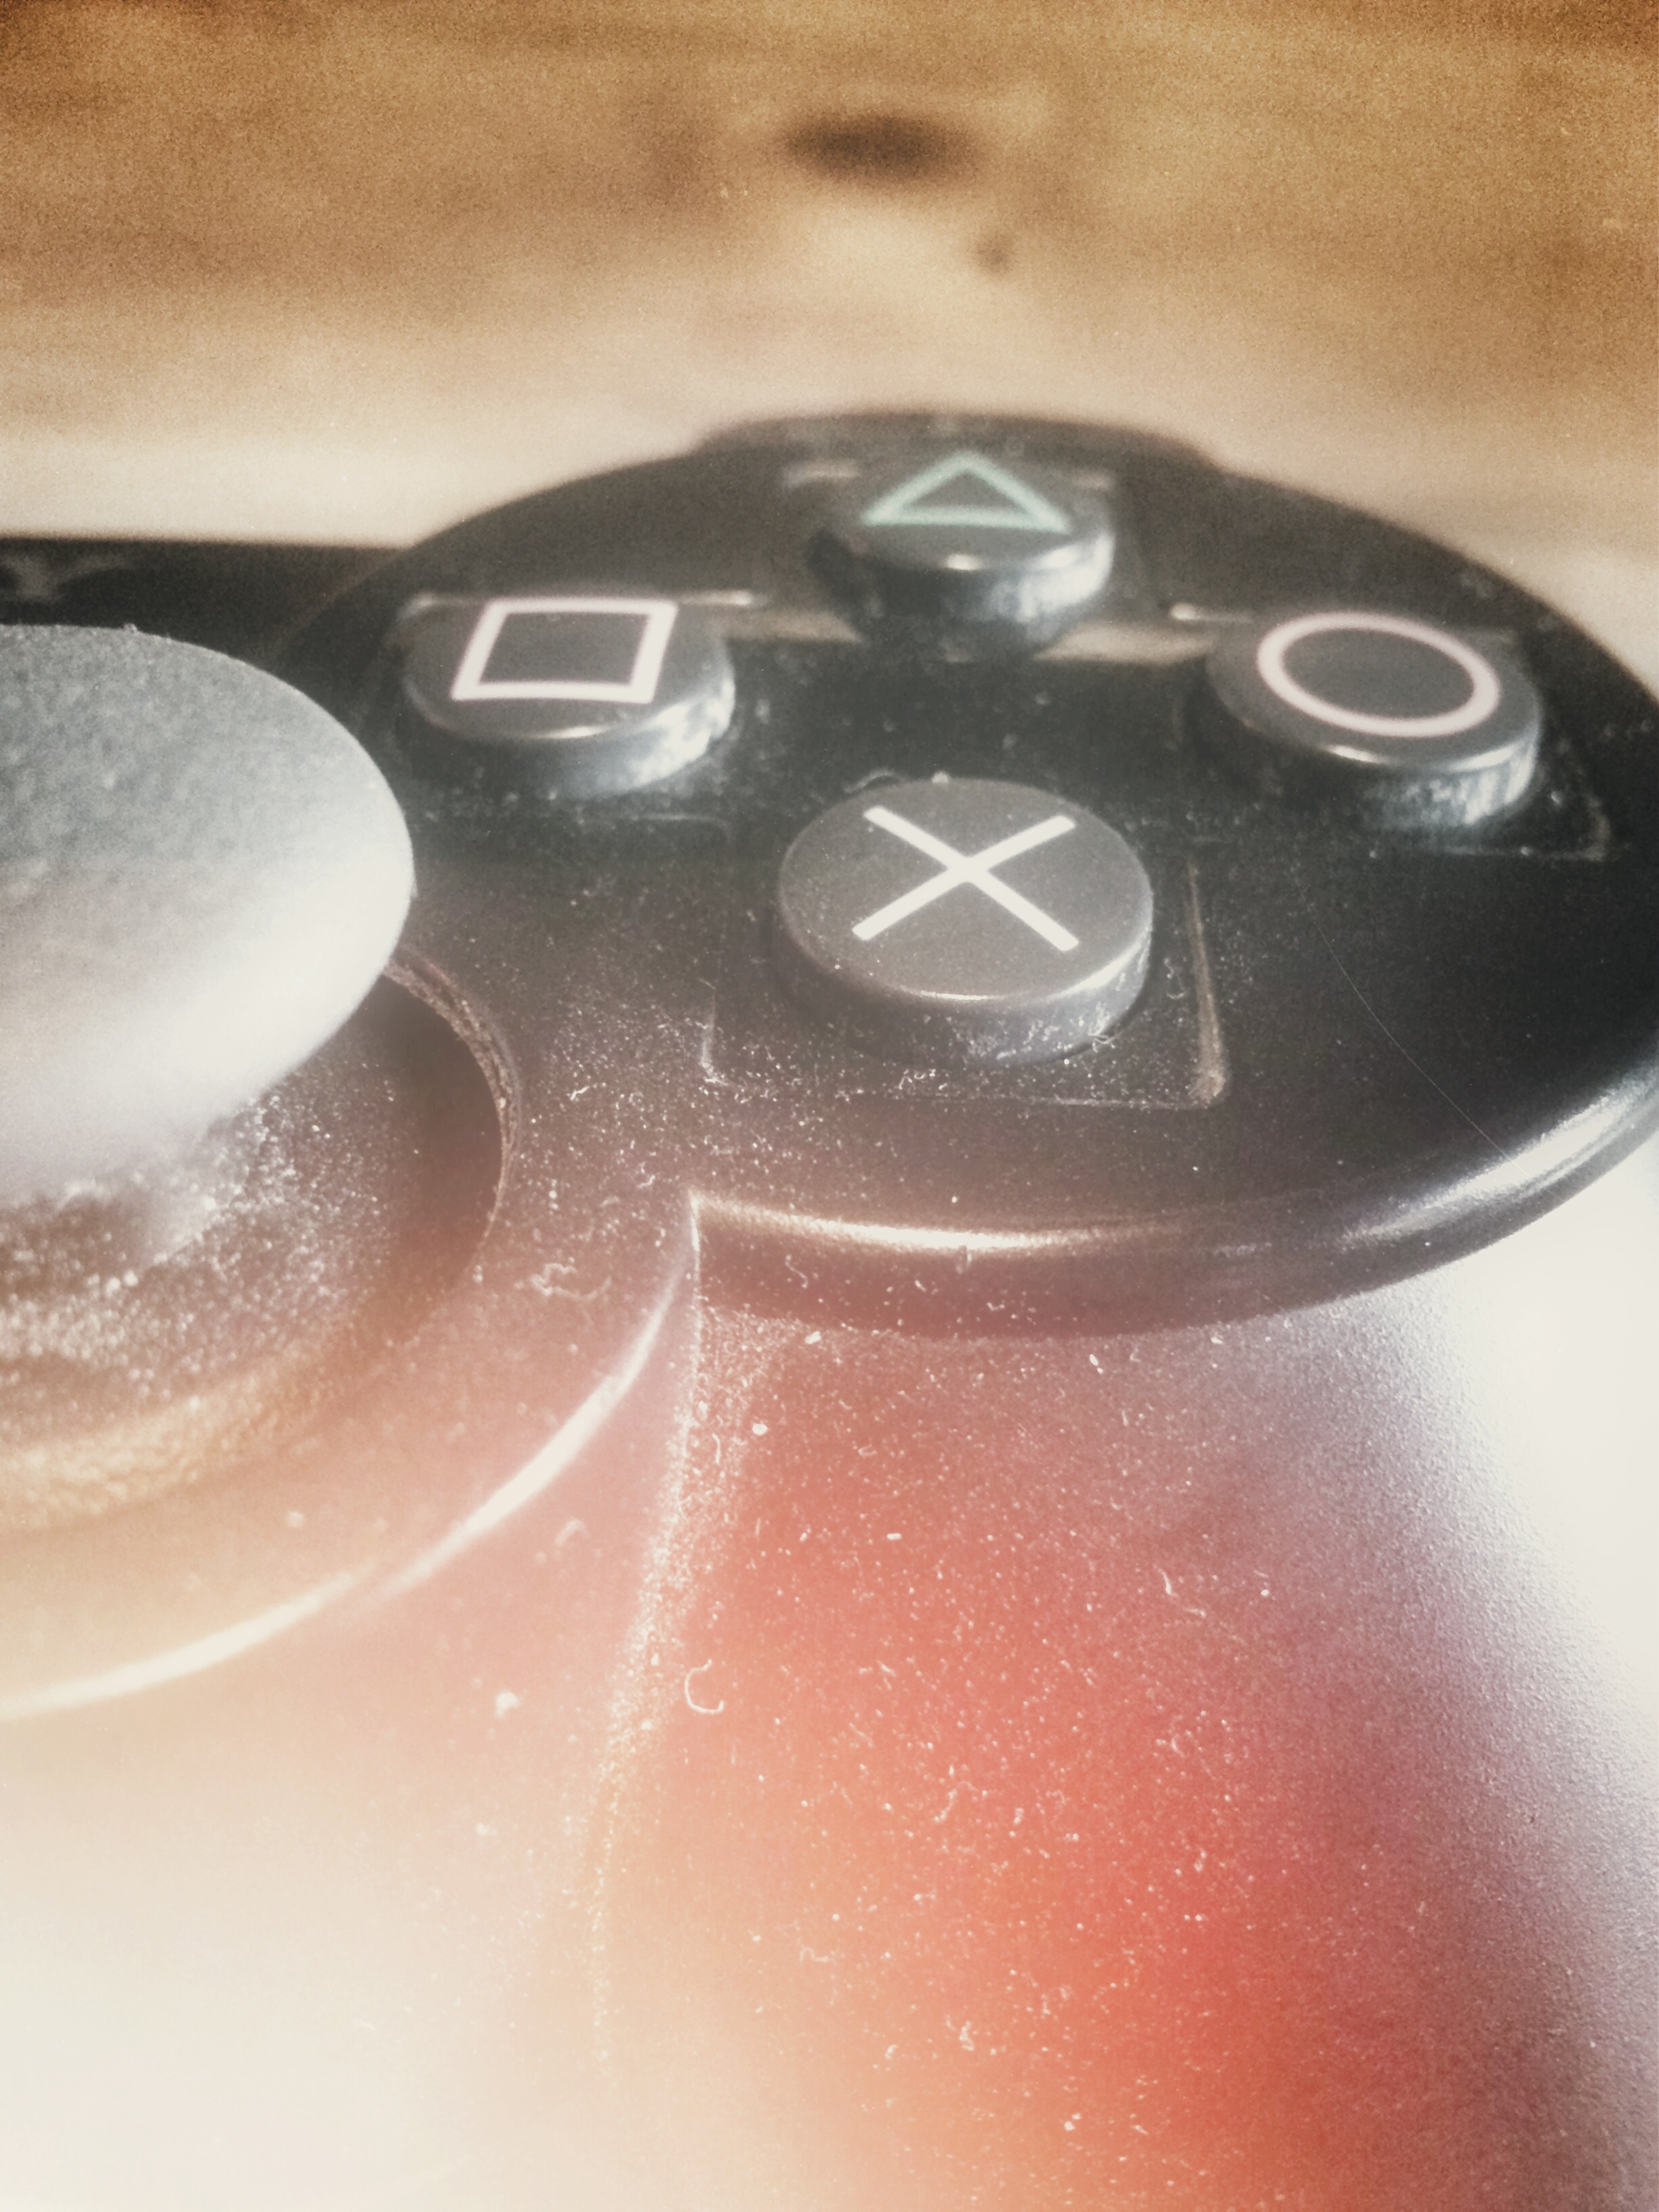 my PS3 controller